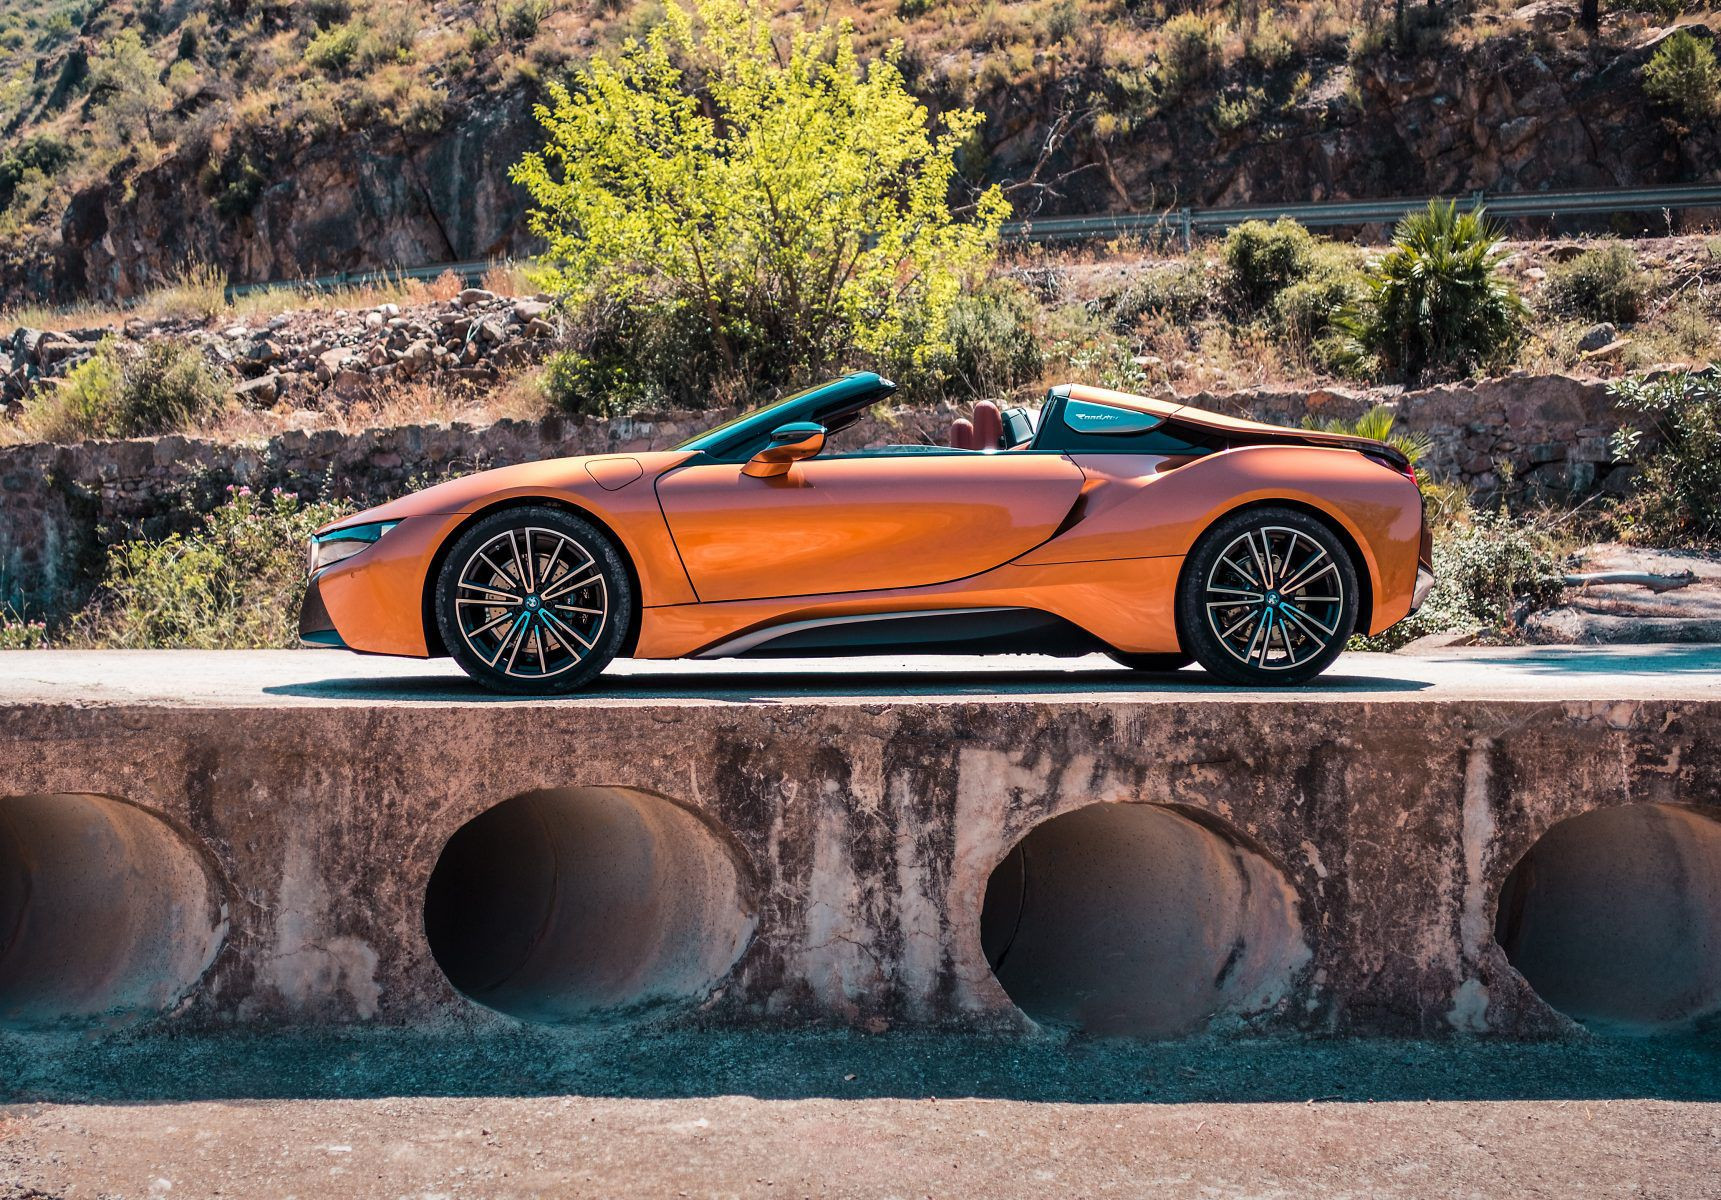 Orange BMW i8 Roadster parked in front of rocky mountain